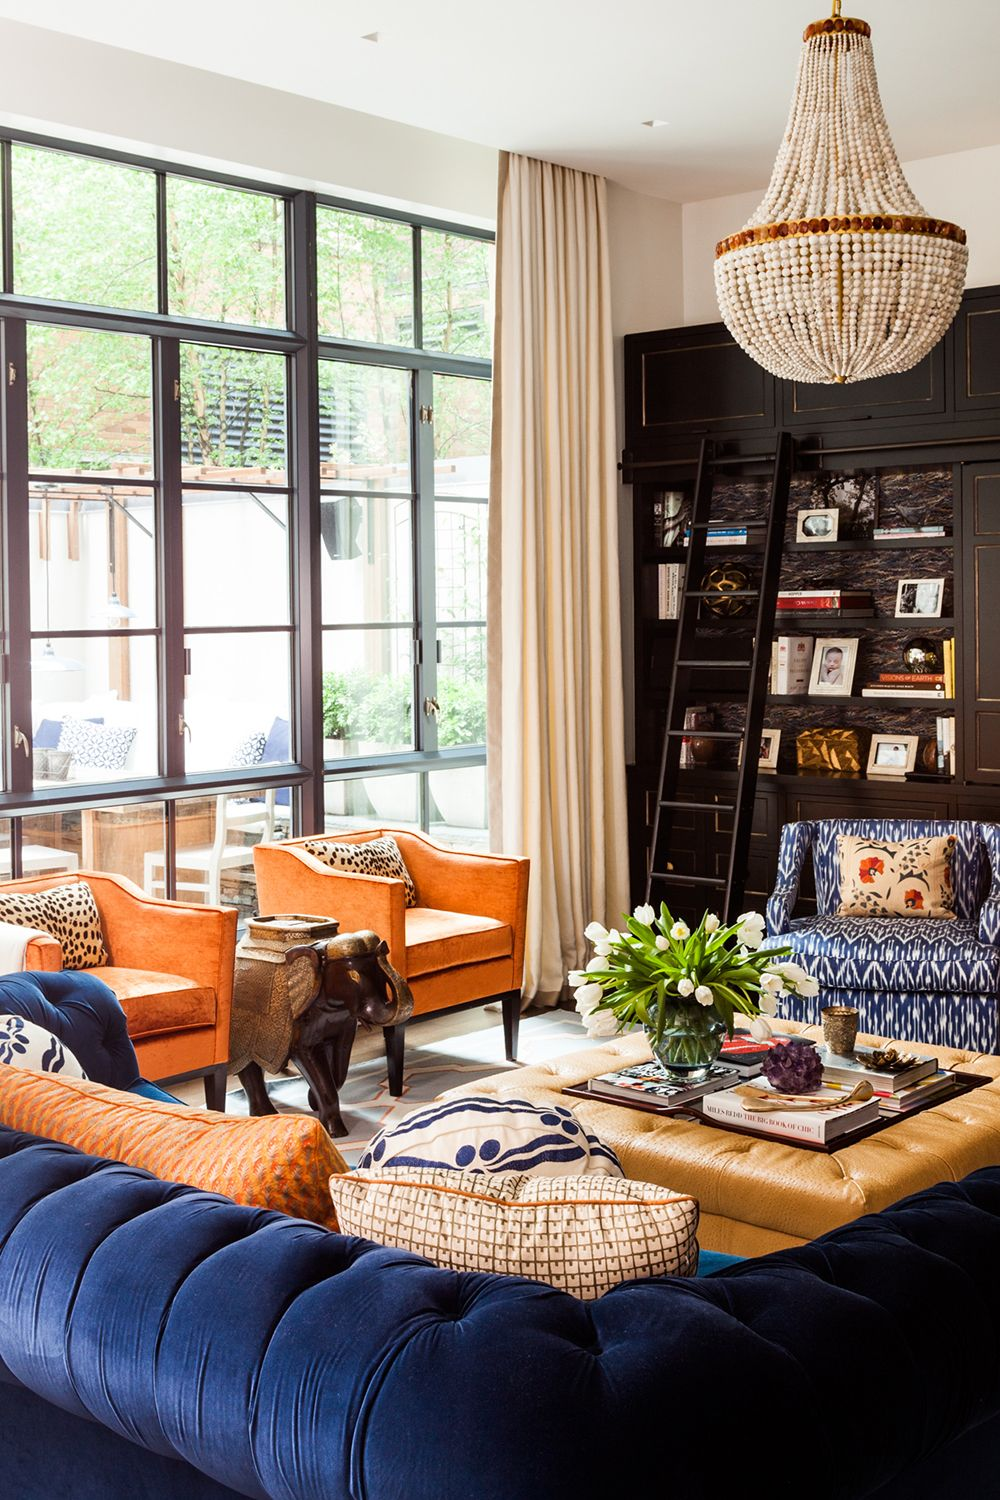 & 29 Stunning Living Rooms For Every Type of Style